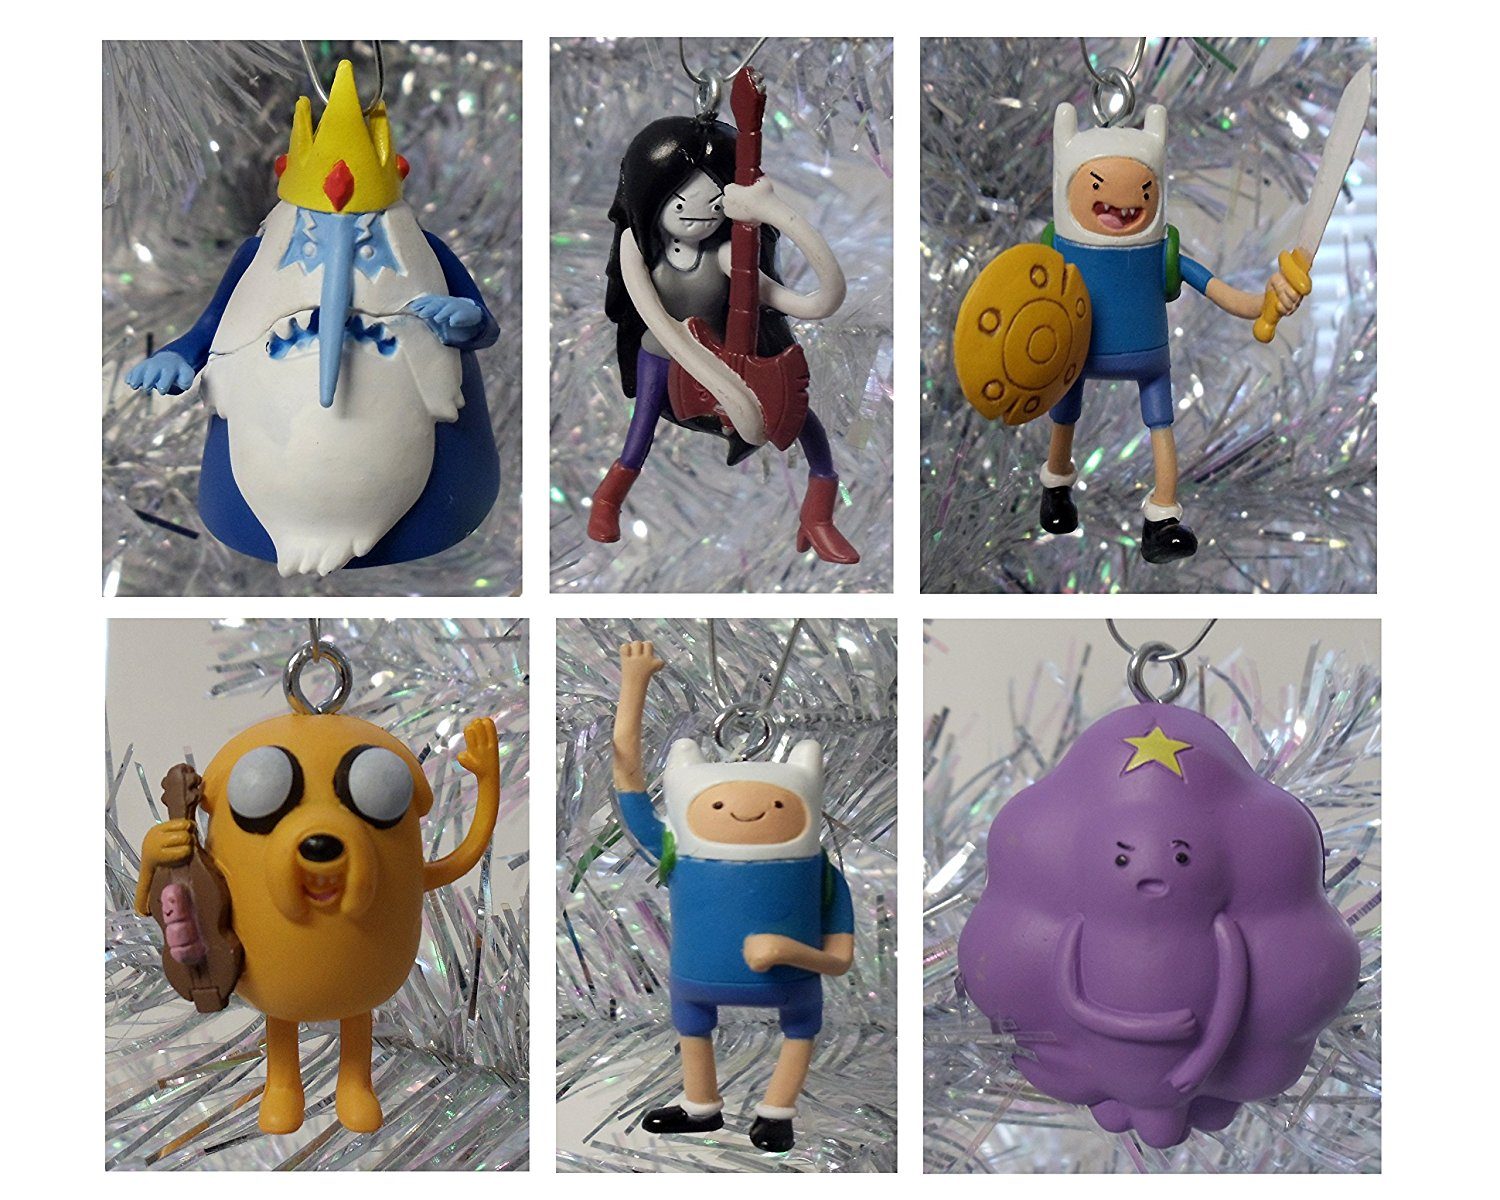 """Adventure Time 6 Piece Holiday Christmas Ornament Set Featuring Marceline, Finn, Ice King, Battle Finn, Jake and Lumpy Space Princess - Shatterproof Plastic Ornaments Range from 1.5"""" to 2.5"""" Tall - Perfect for Mini Kids Tree or Desk Office Tree"""